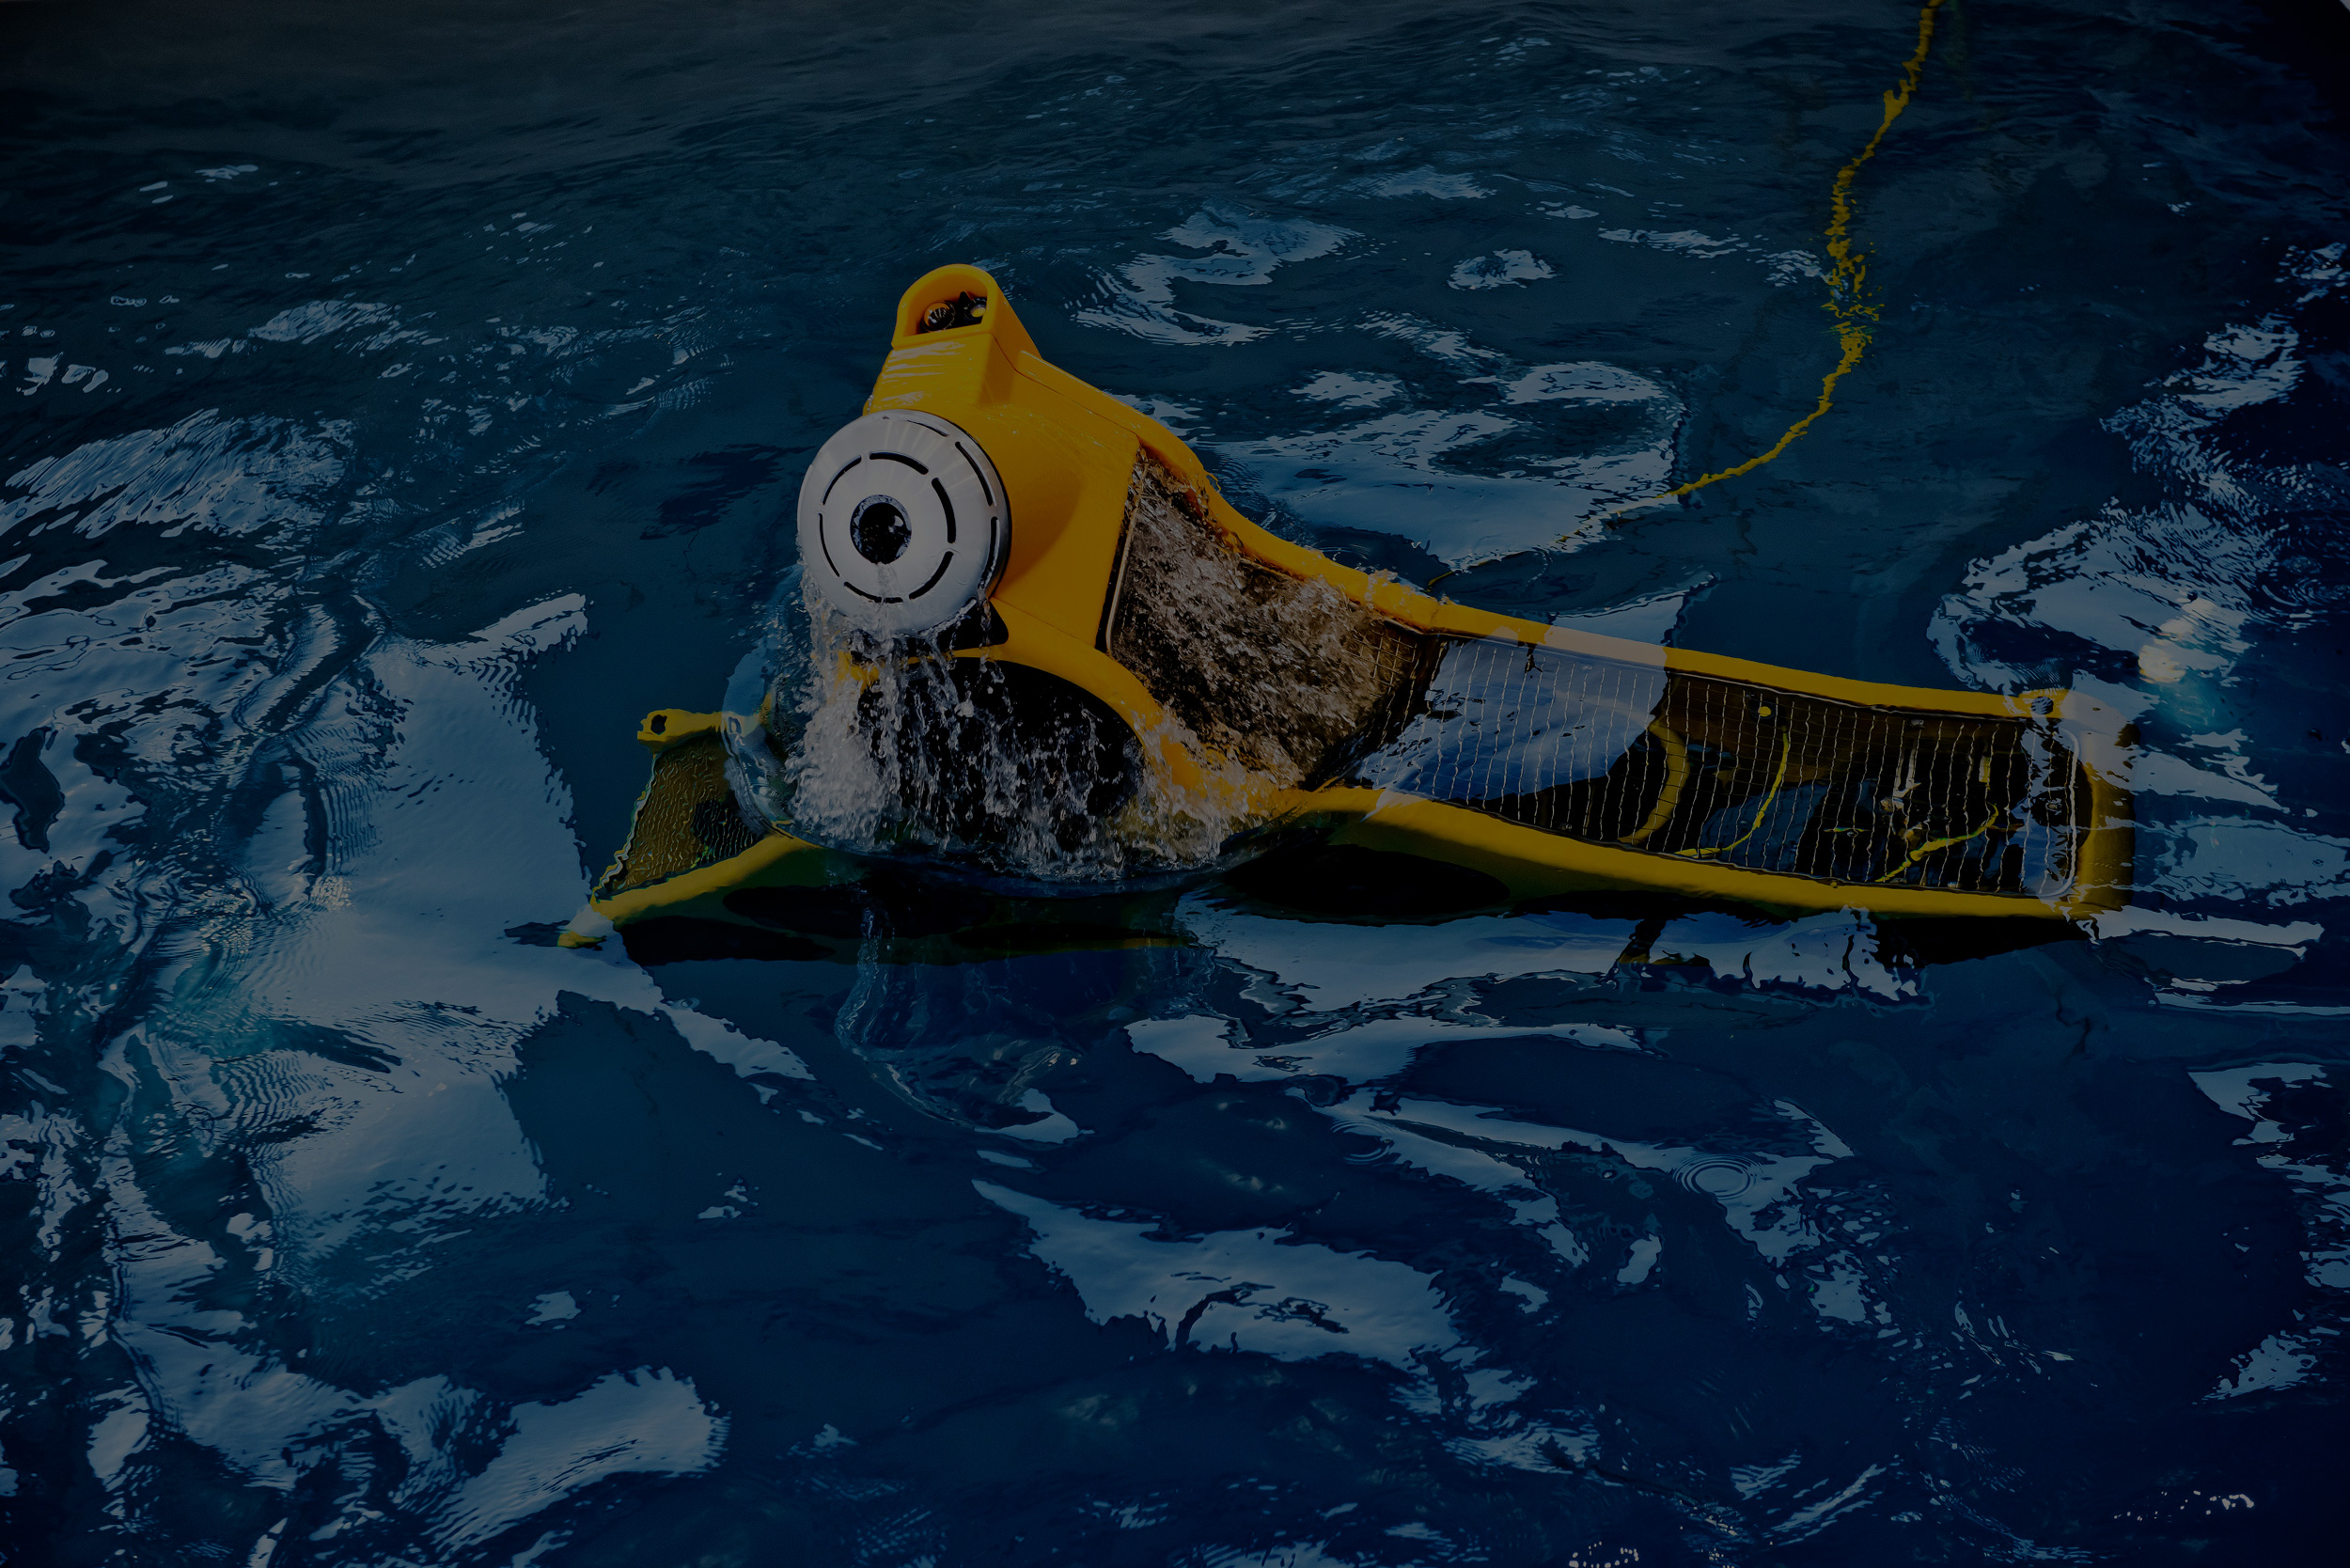 Tools - From buoyancy to subsea tools - we deliver the whole package.